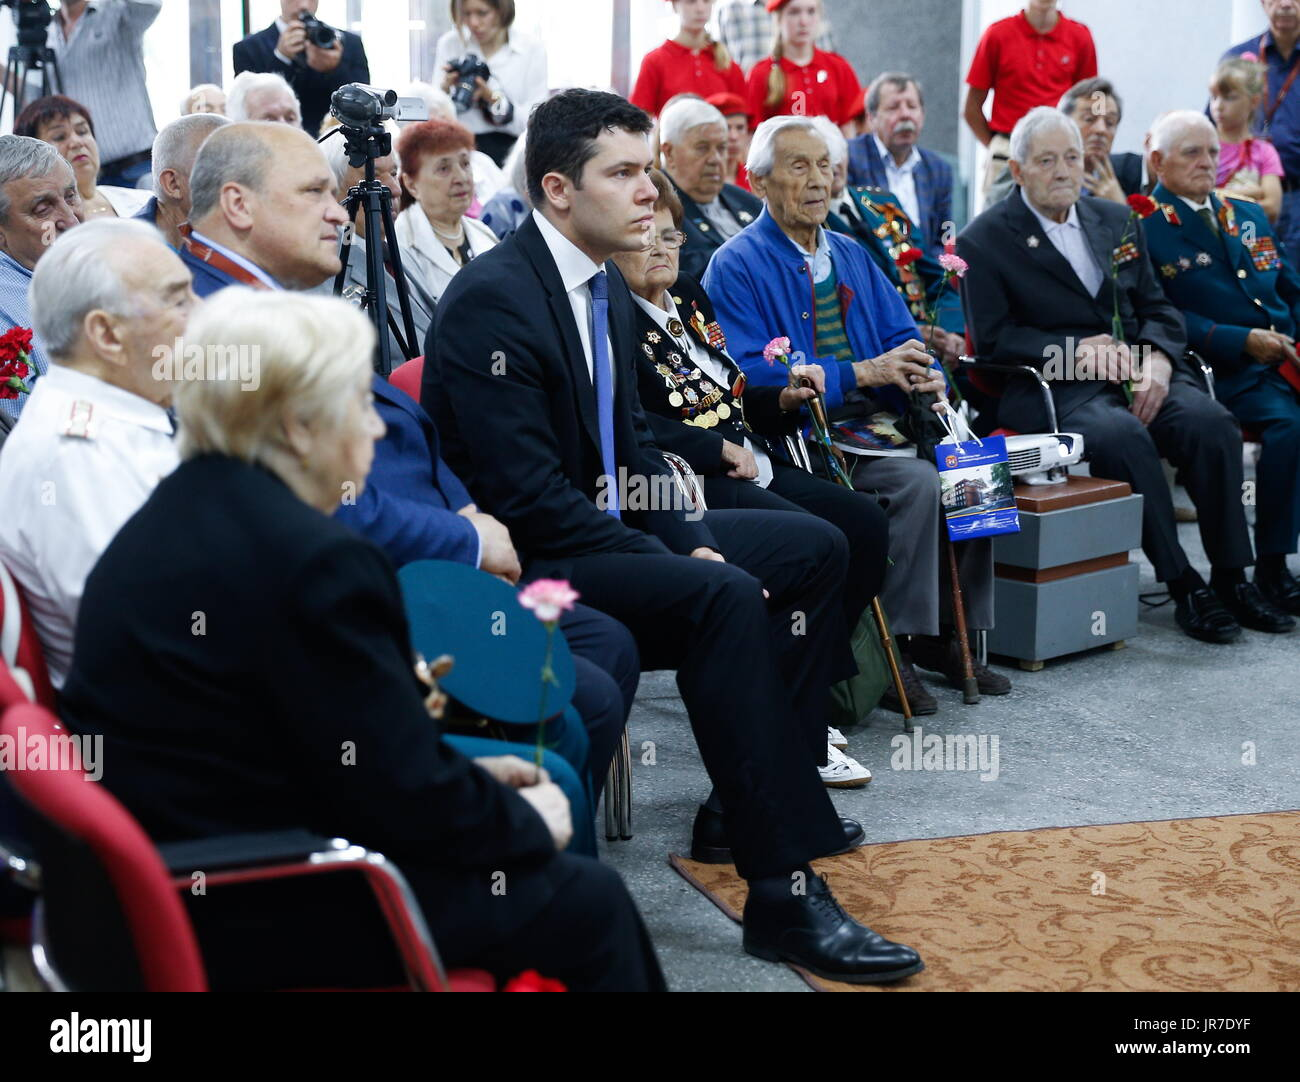 Kaliningrad Region, Russia. 3rd Aug, 2017. WWII veterans and the acting governor of Kaliningrad Region, Anton ALikhanov (C), visit a 3-dimensional panoramic exhibition titled 'Konigsberg 1945: the Final Assault' at the Kaliningrad Region Museum of History and Arts; the 360-degree display, which depicts the April 1945 assault by the Red Army on the city of Konigsberg in WWII, is an artwork by the Nevsky Batalist team led by Dmitry Poshtarenko. Credit: Vitaly Nevar/TASS/Alamy Live News - Stock Image